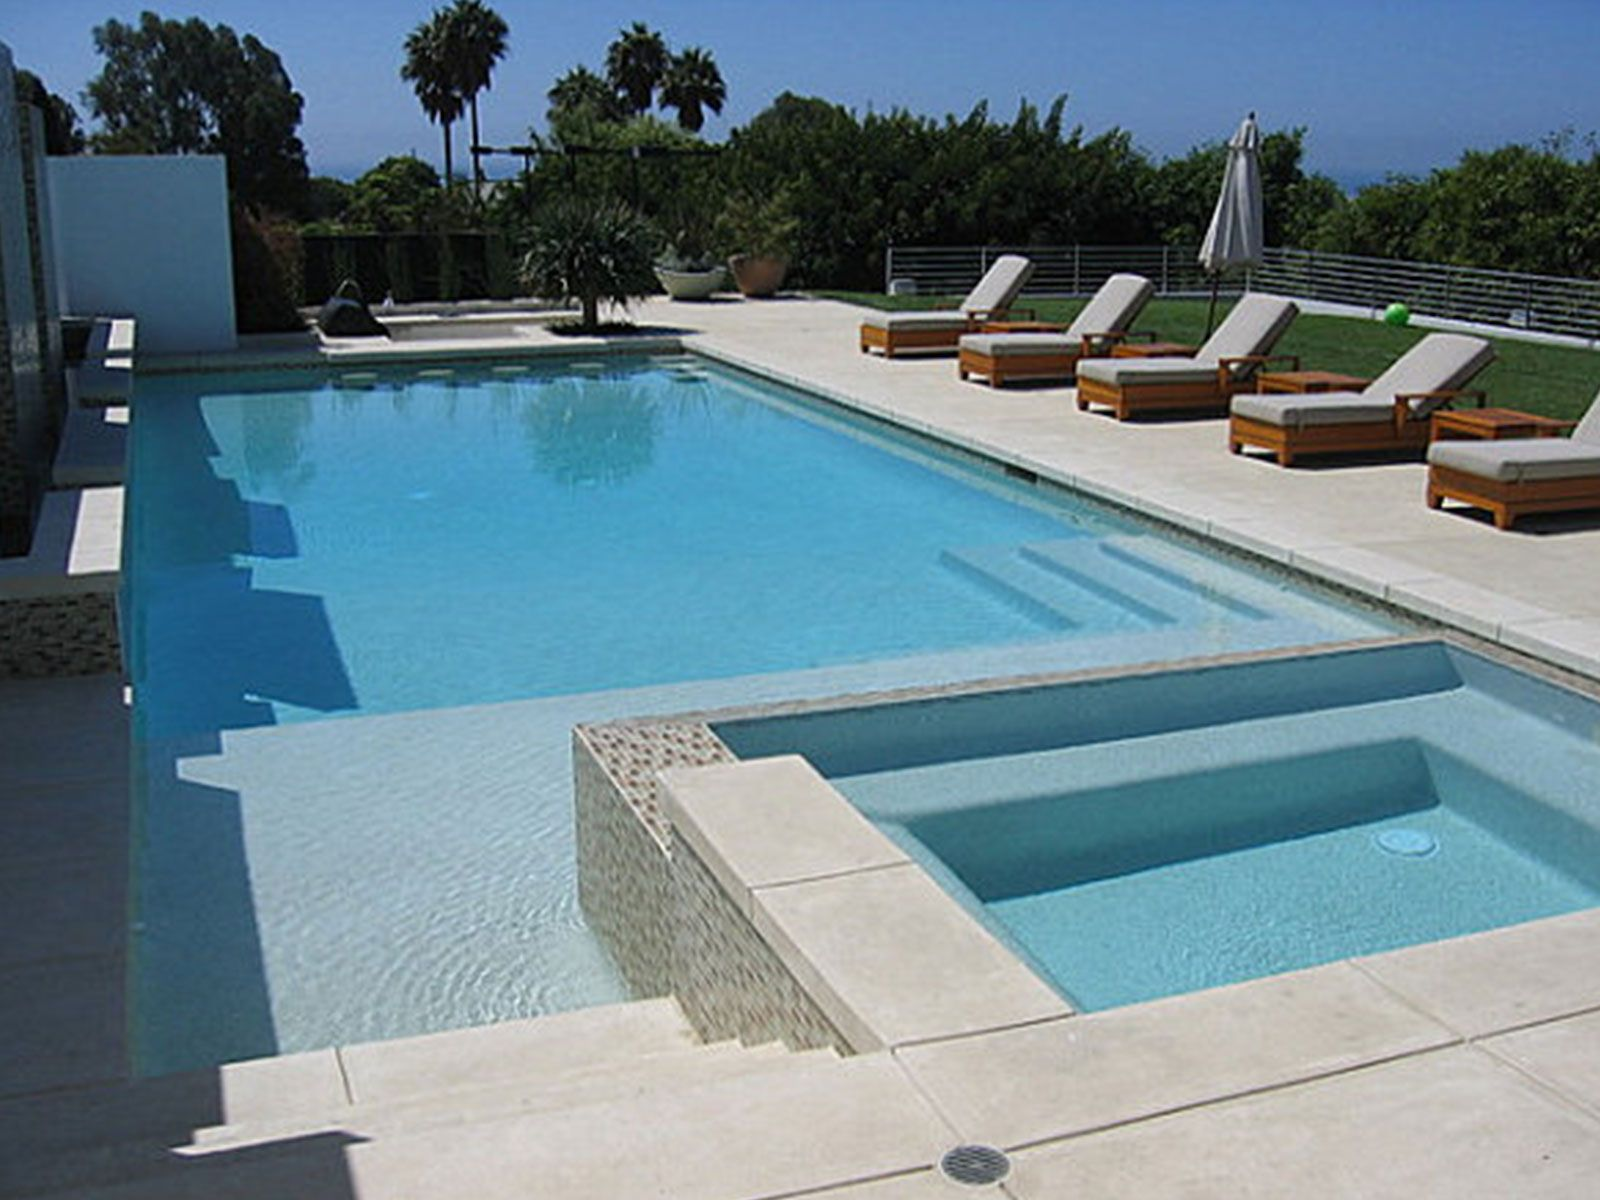 Simple swimming pool design image modern creative swimming for Swimming pool design details